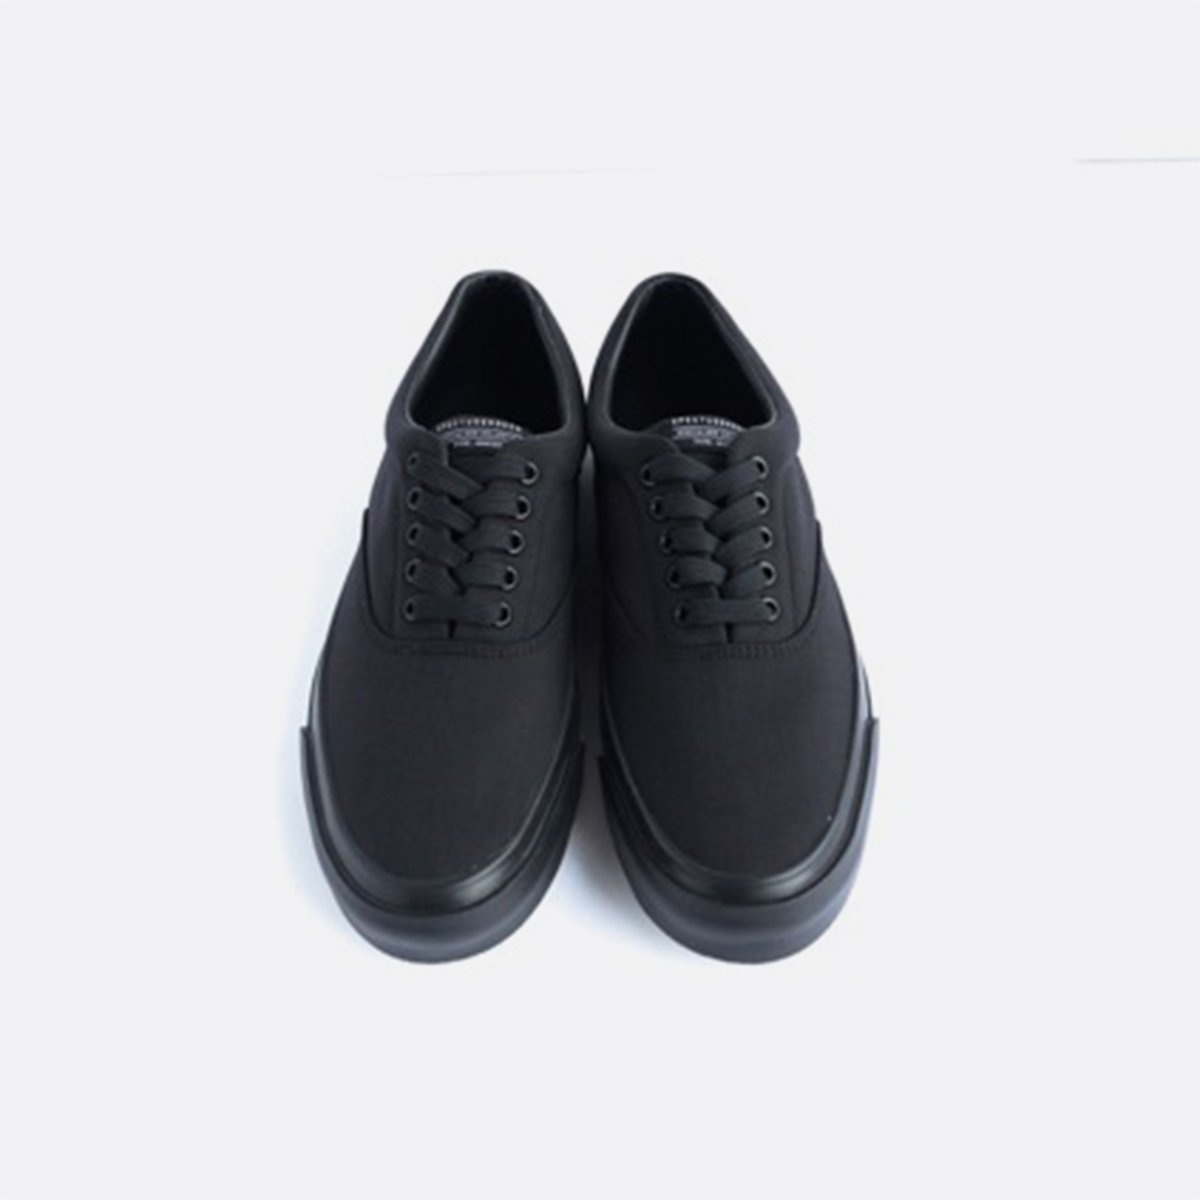 SPECTUS SHOE CO. Solid Kicks no.2 (BLACK/BLACK)2